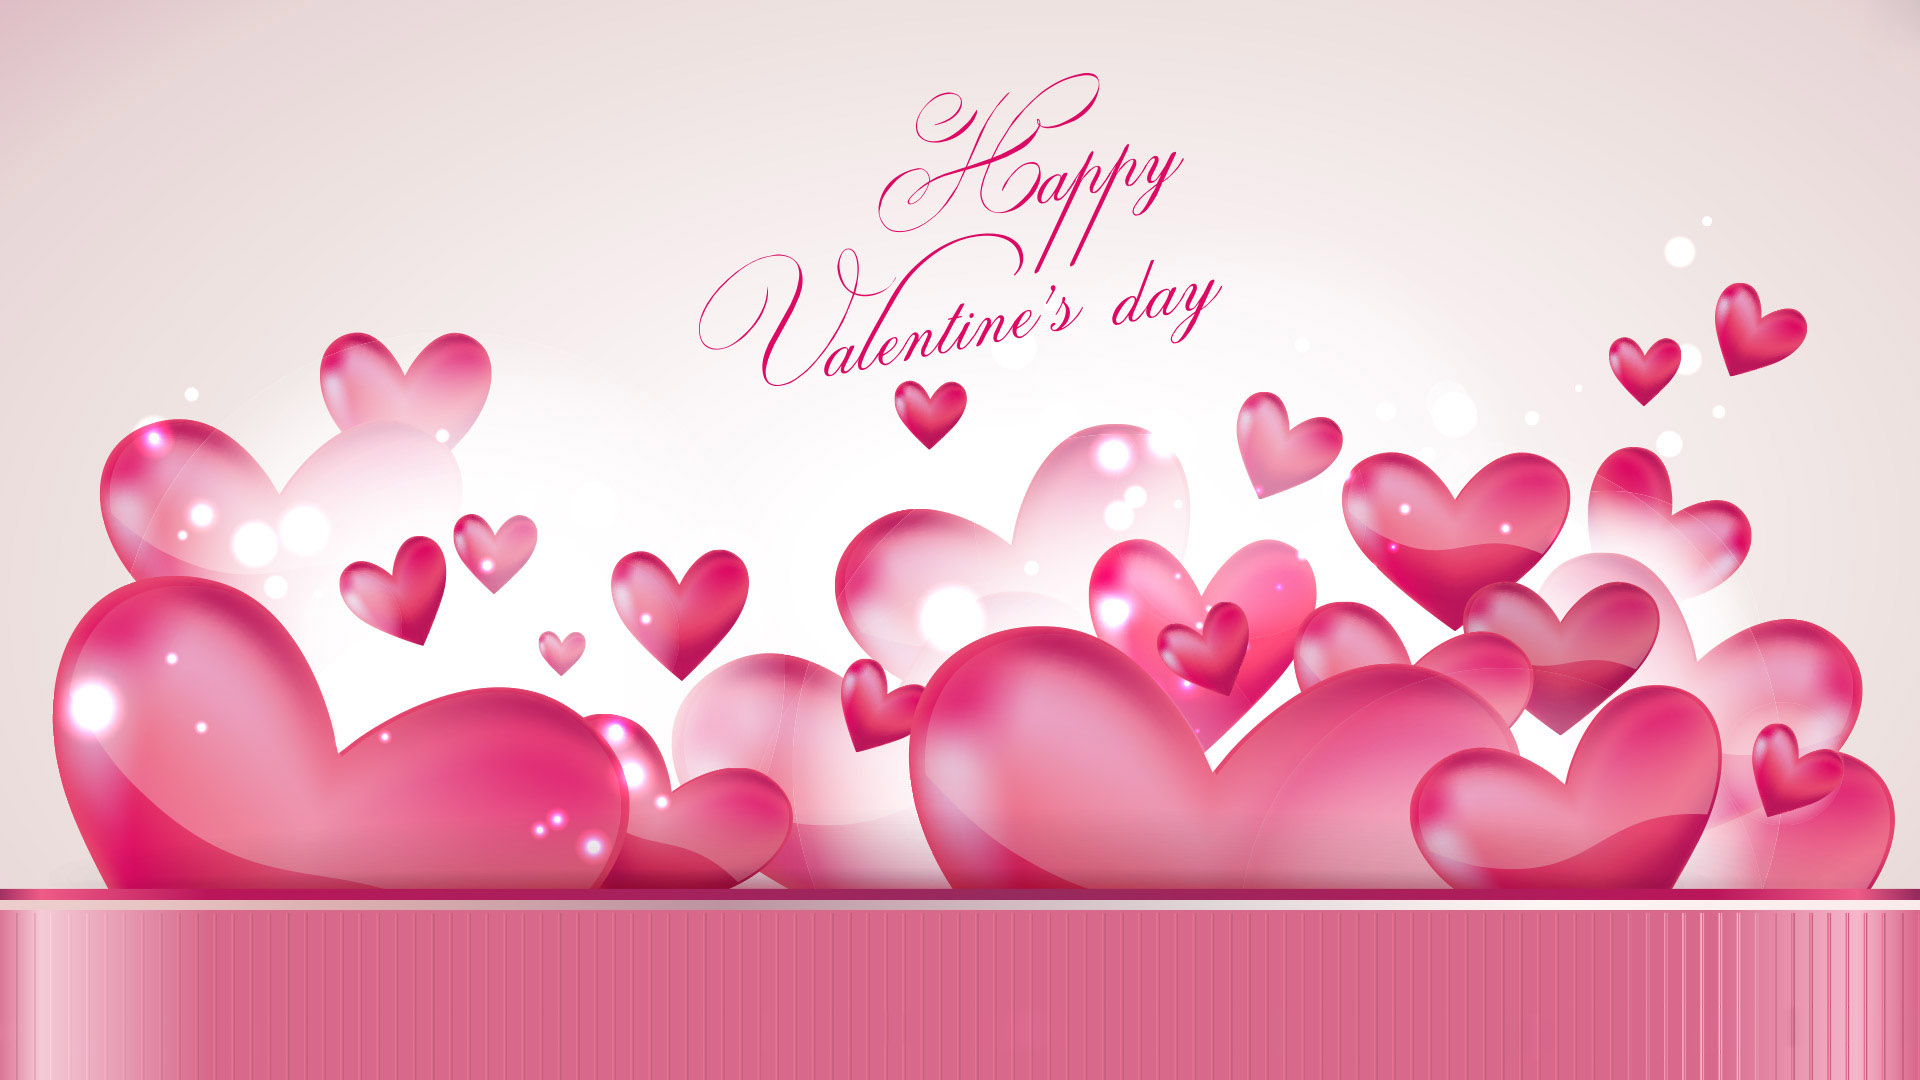 Happy Valentines Day Hearts Wallpaper